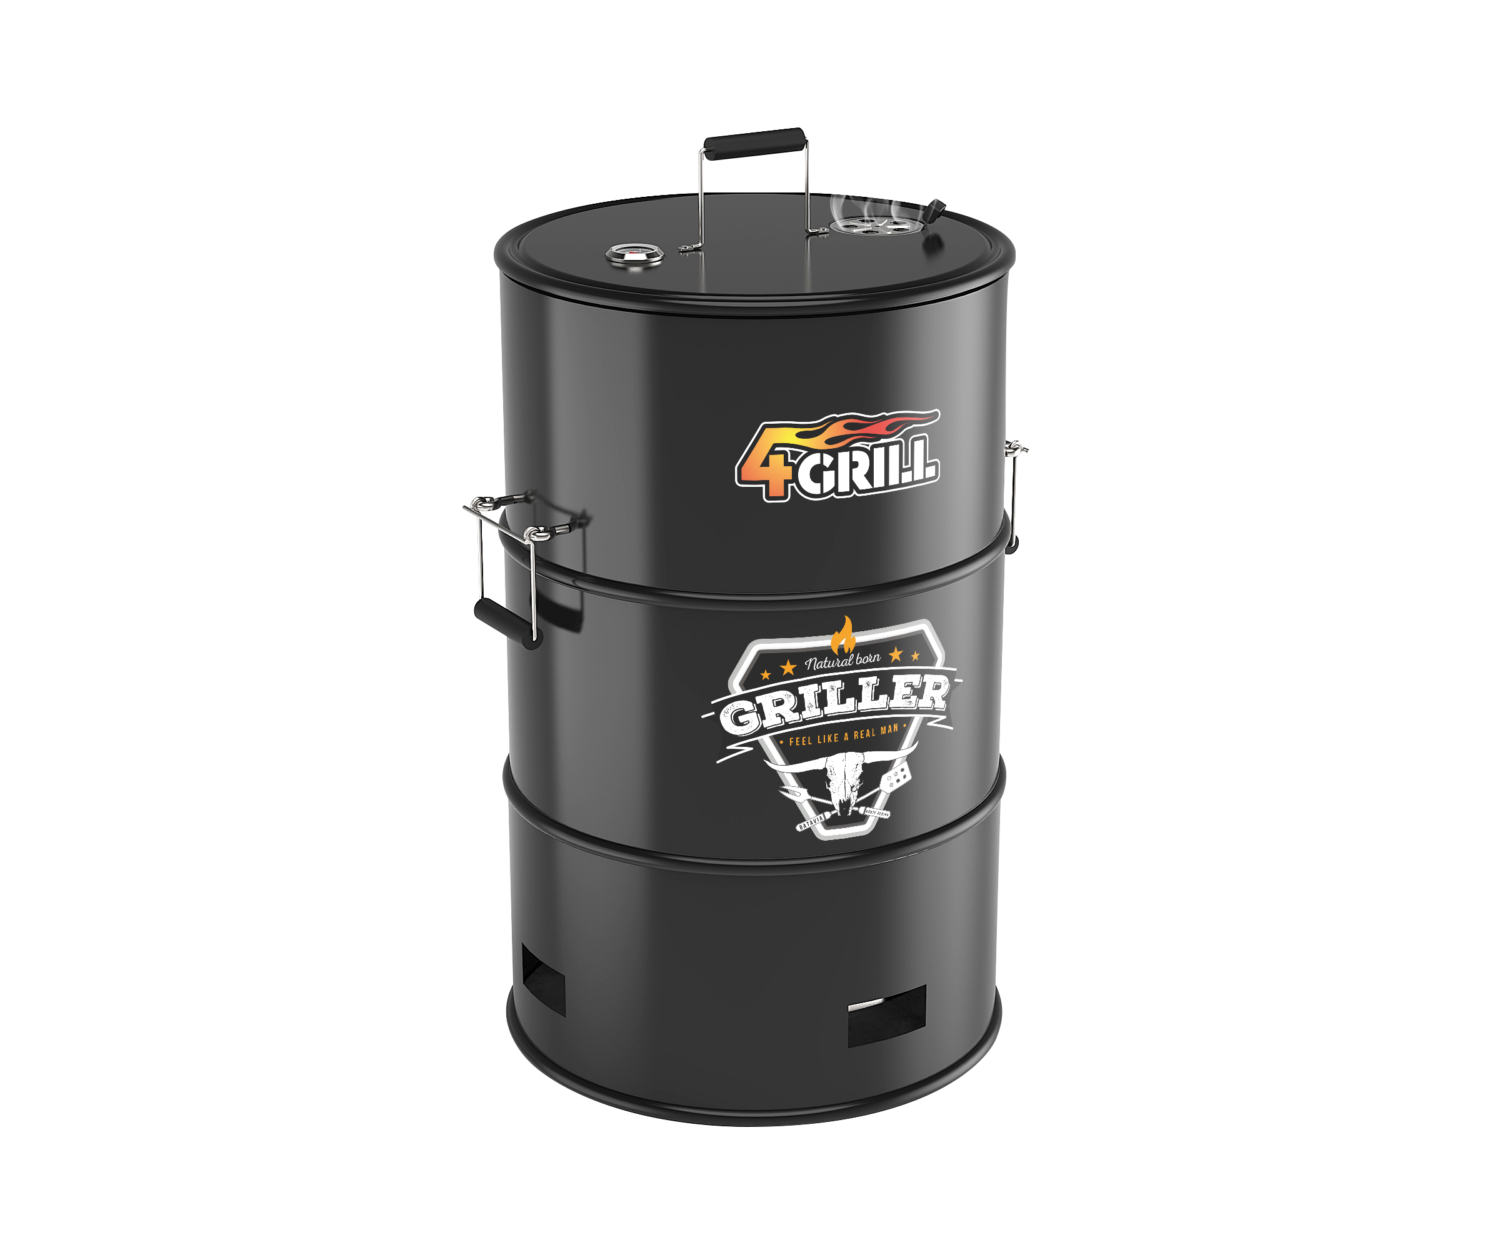 barbecue with functions. Grilling clipart barrel grill